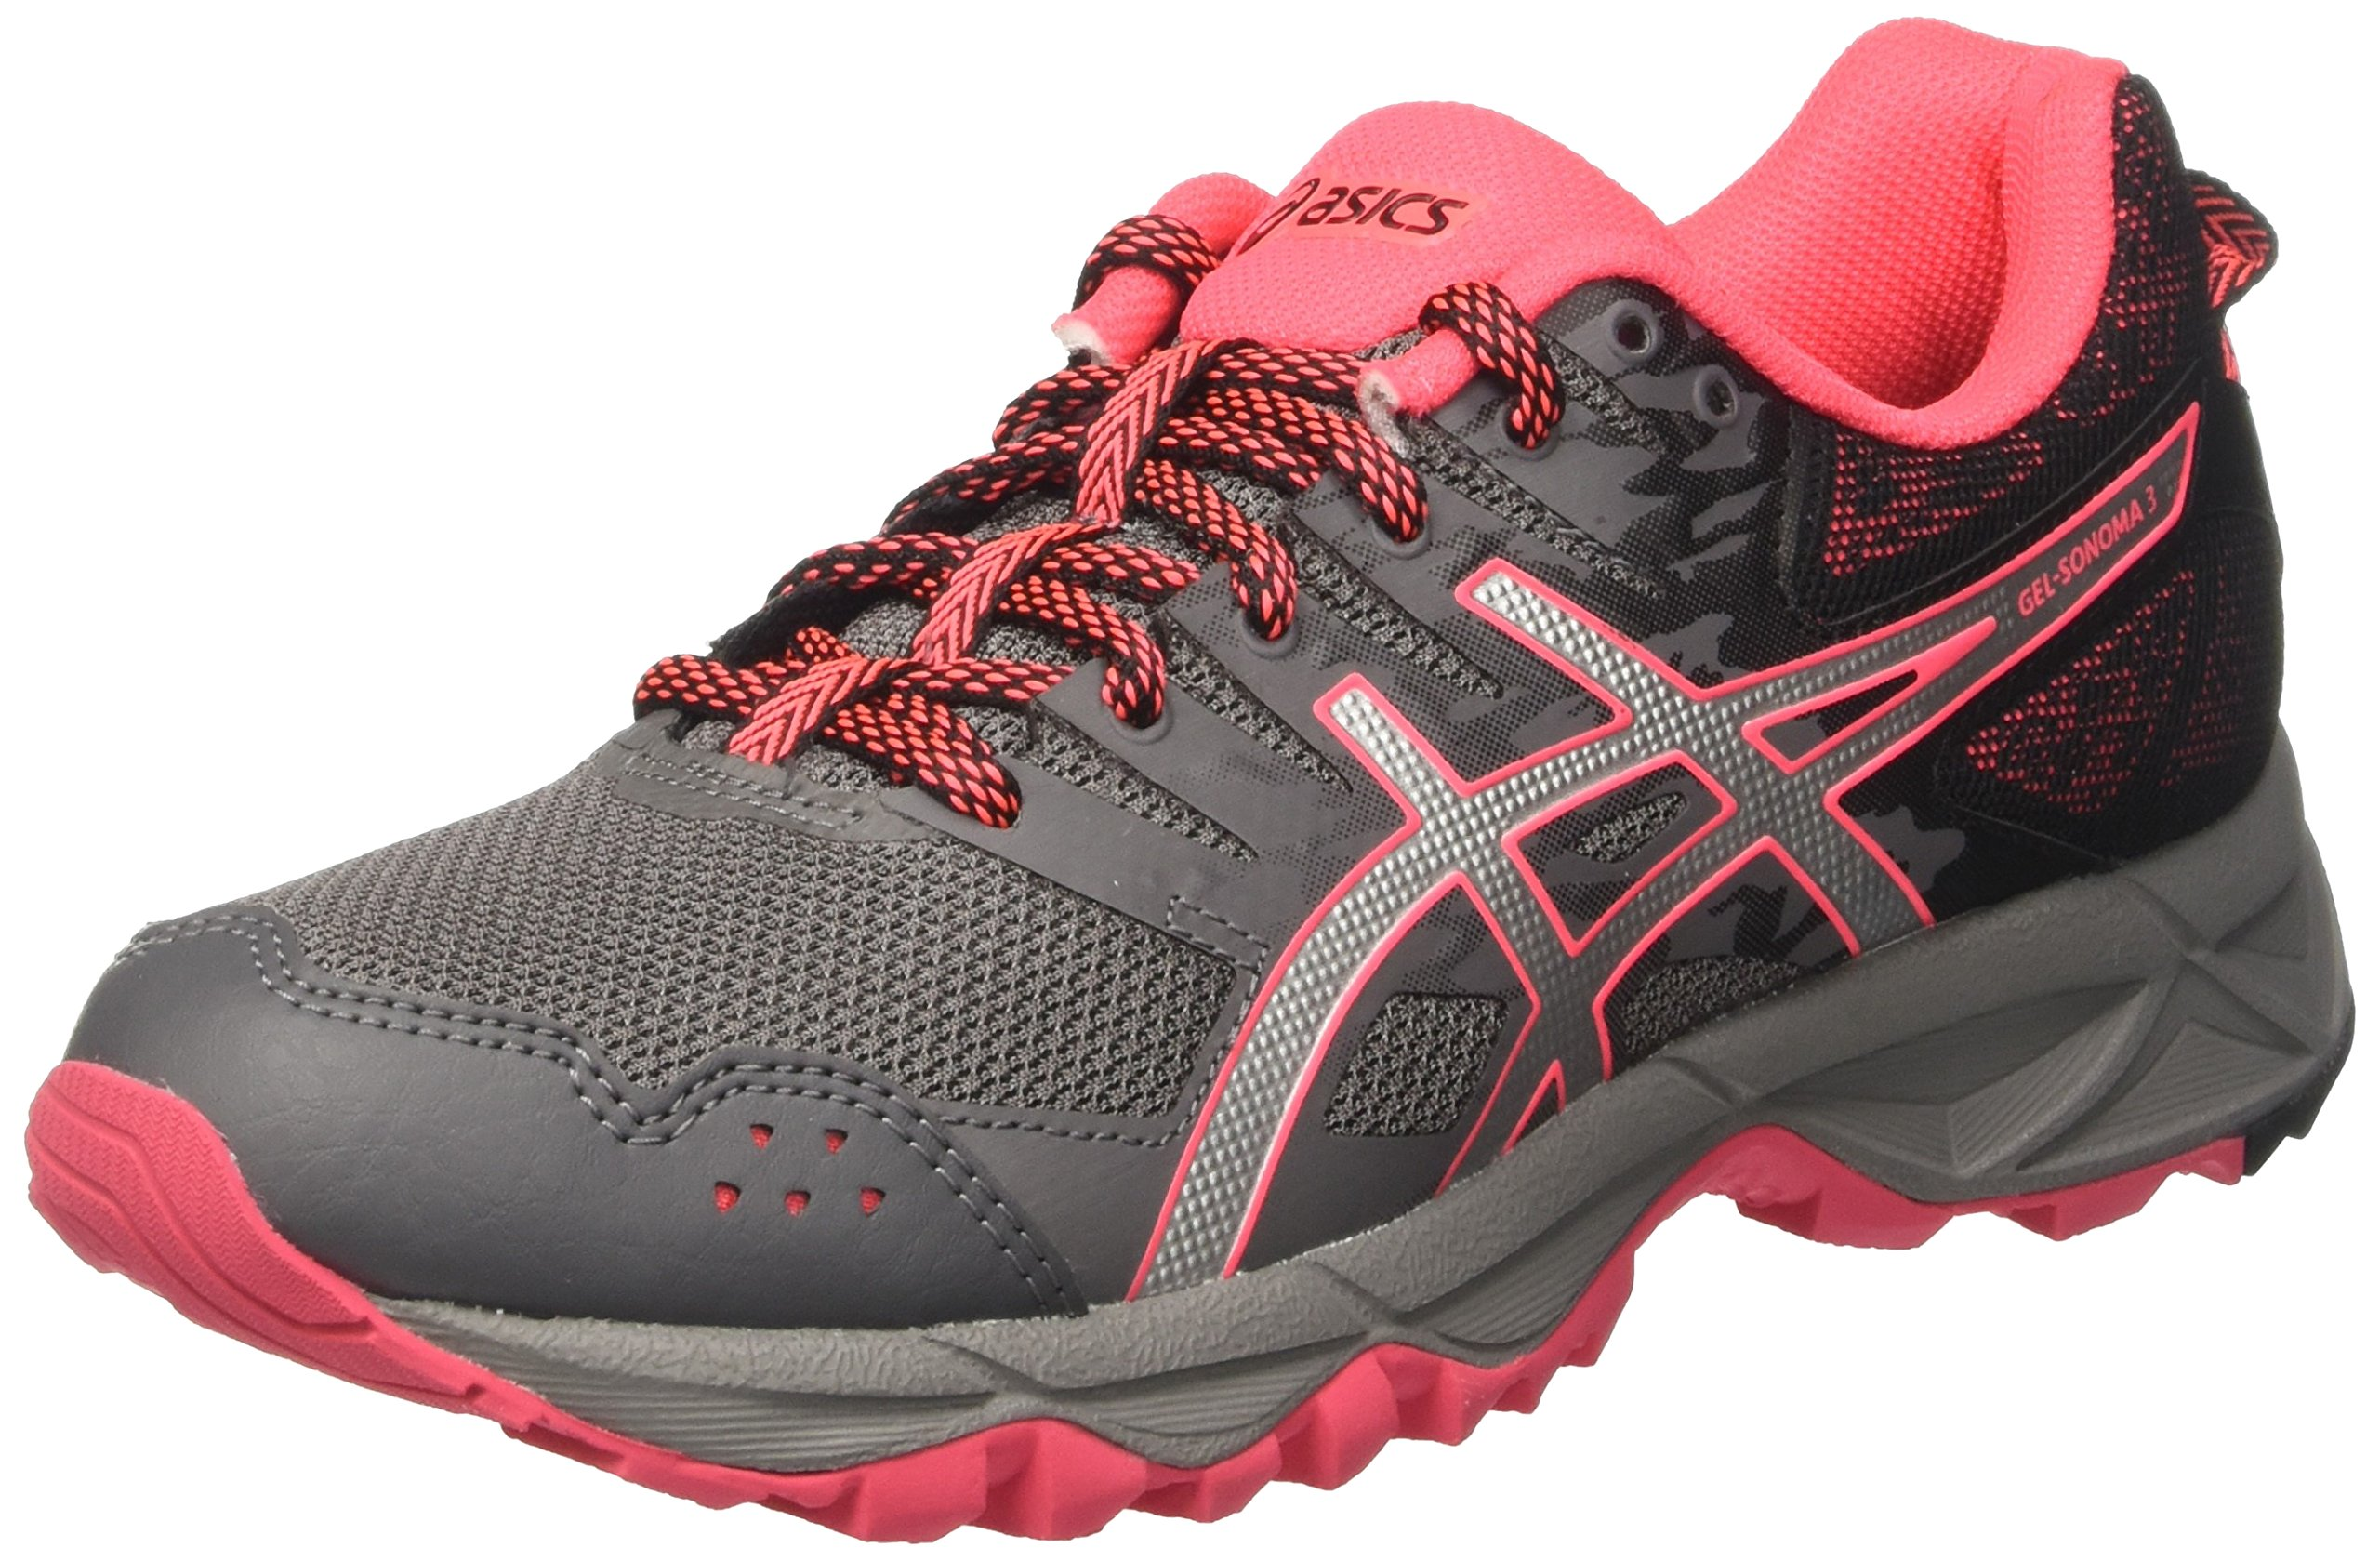 Asics Gel Sonoma 3 Women's Trail Running Shoes - SS17 - 7.5 - Silver